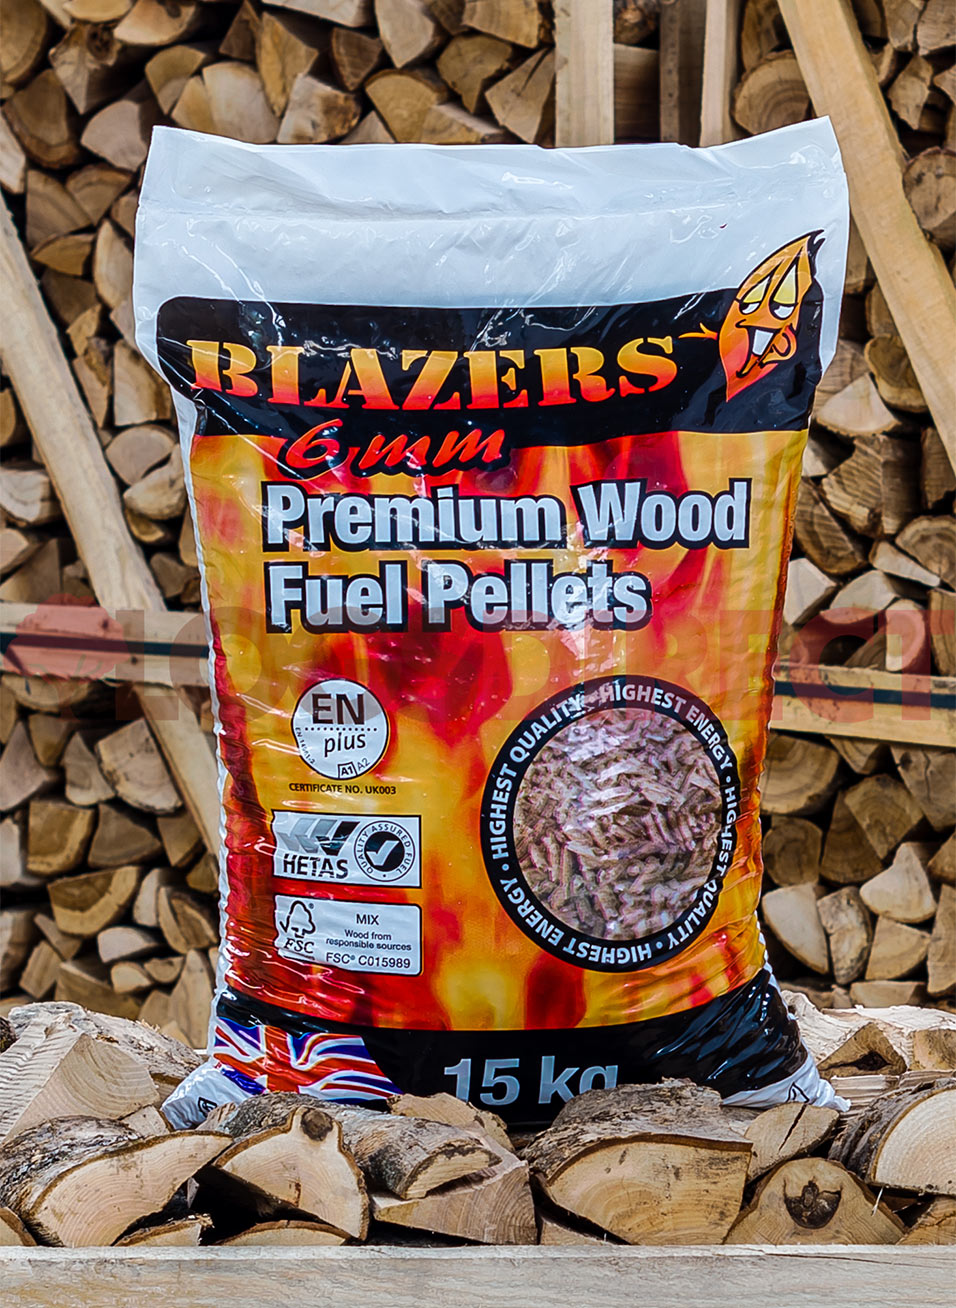 Wood Pellets Handy 15kg Bag Of Blazers Wood Pellets